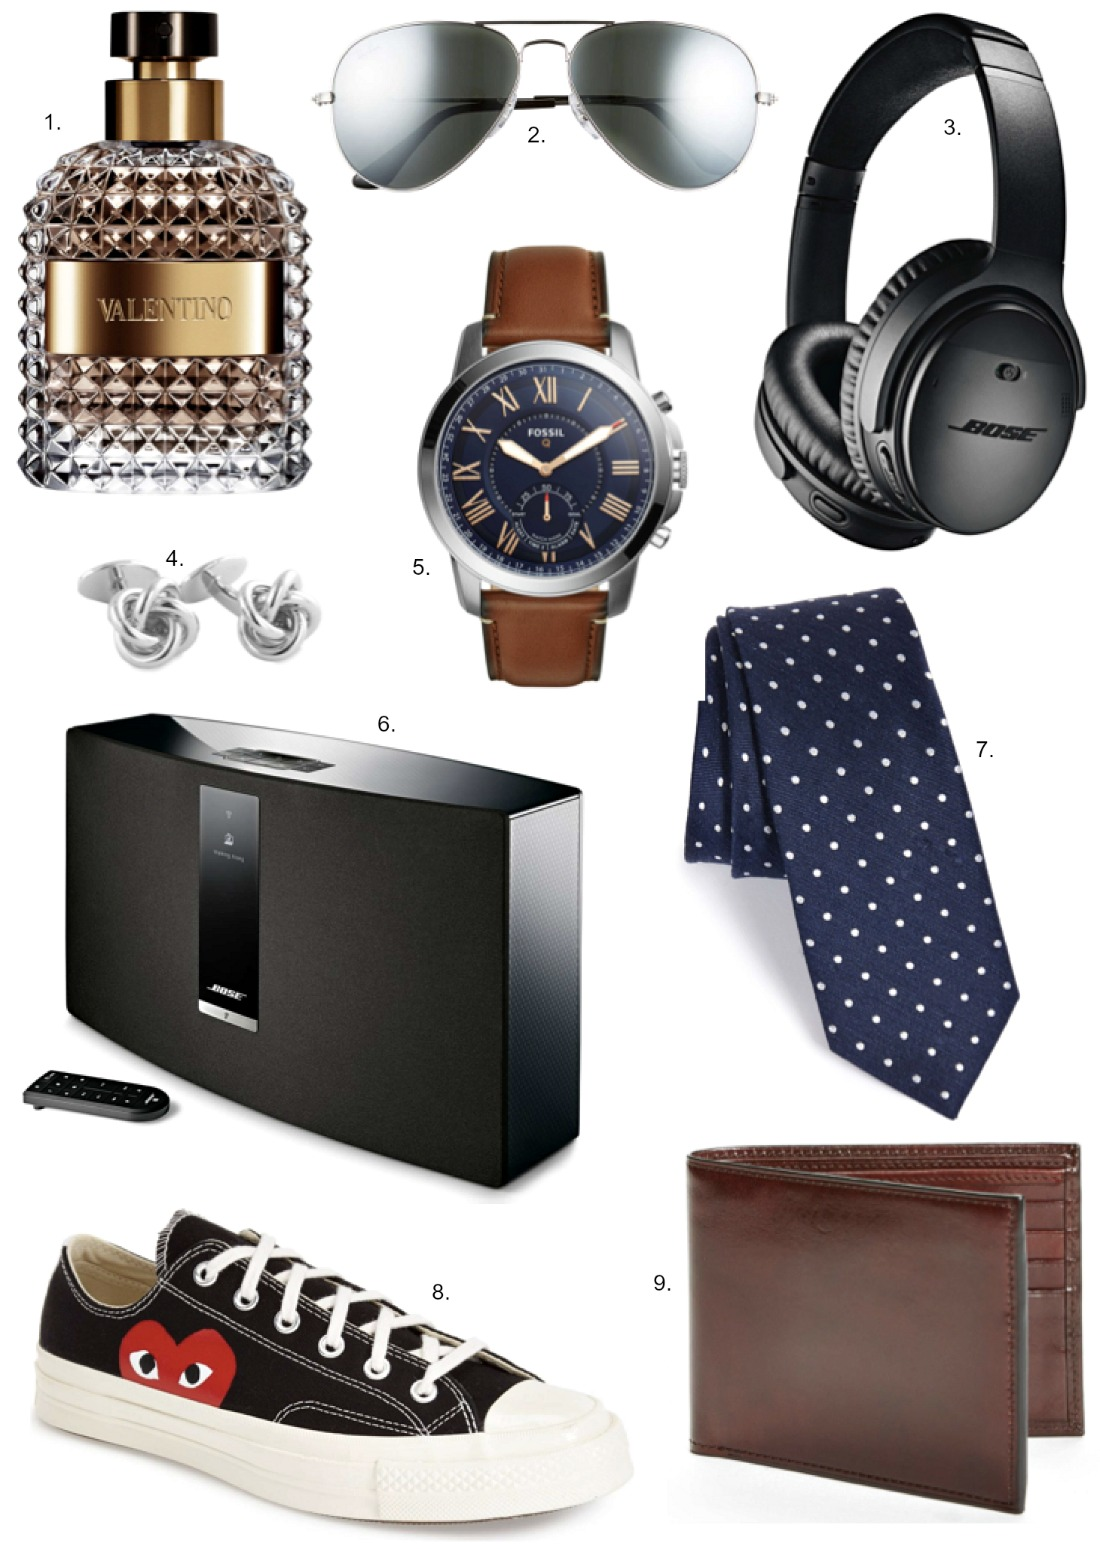 valentine's day gift ideas for him bose headphones review forget me knot cufflinks